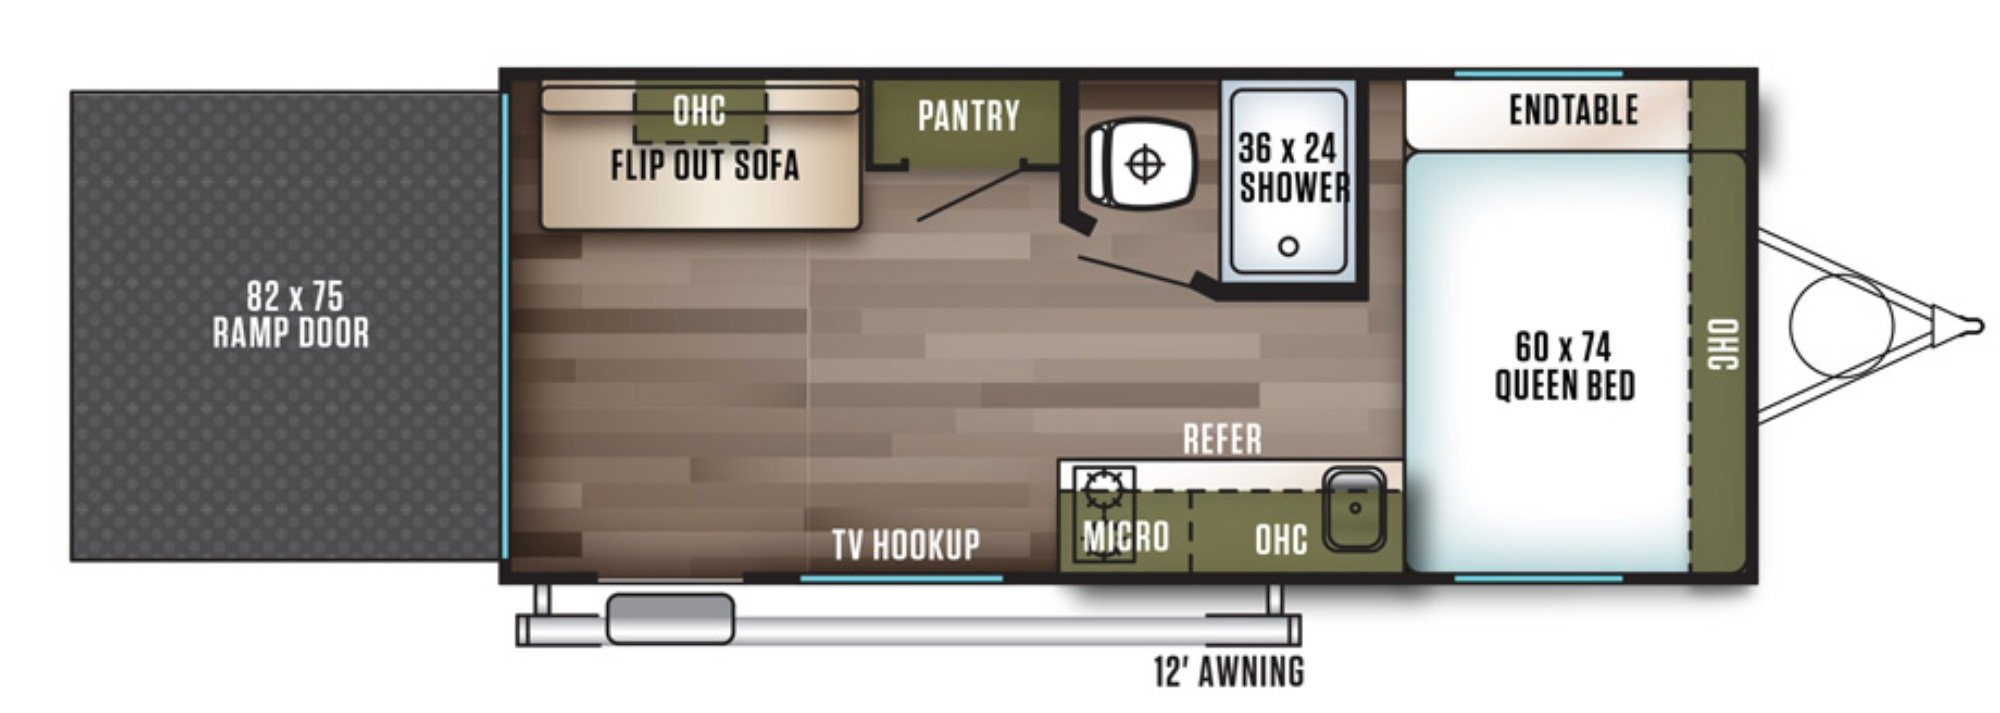 View Floor Plan for 2018 FOREST RIVER WILDWOOD FSX 180RT